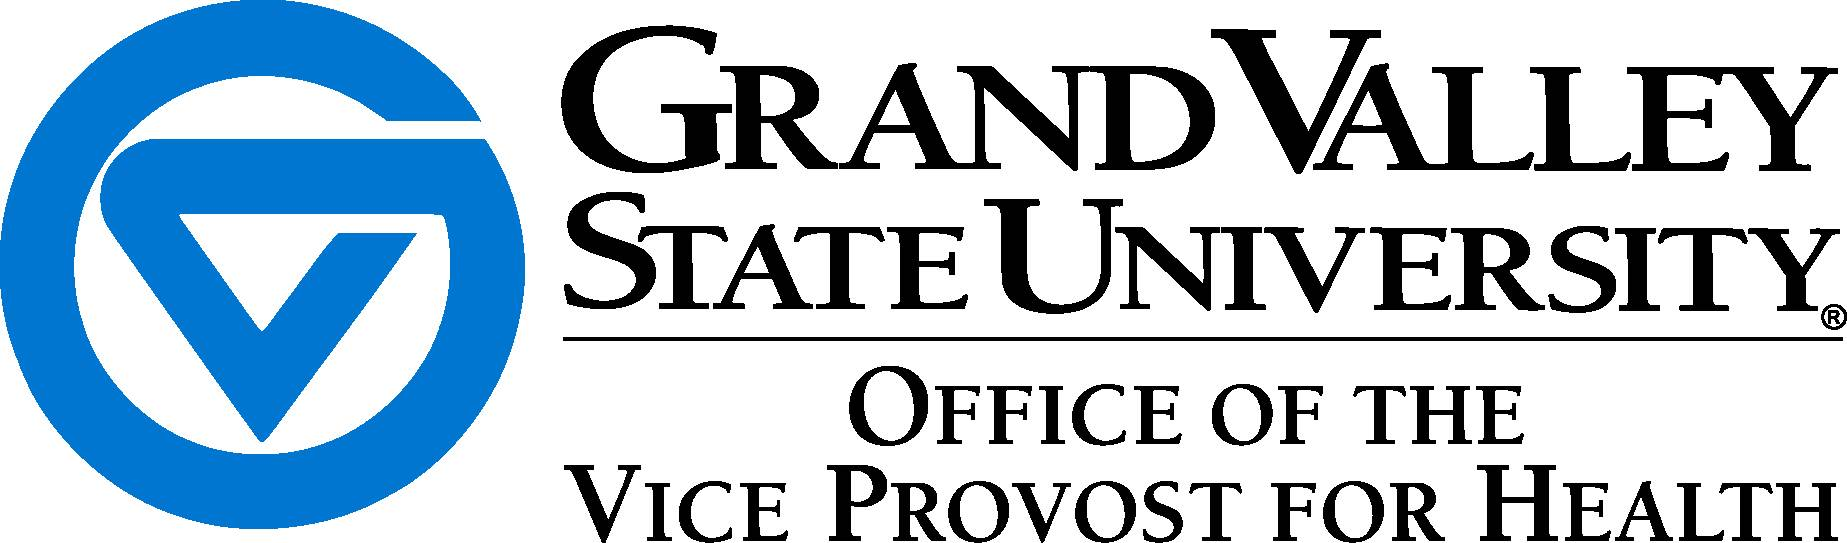 Office of Vice Provost for Health